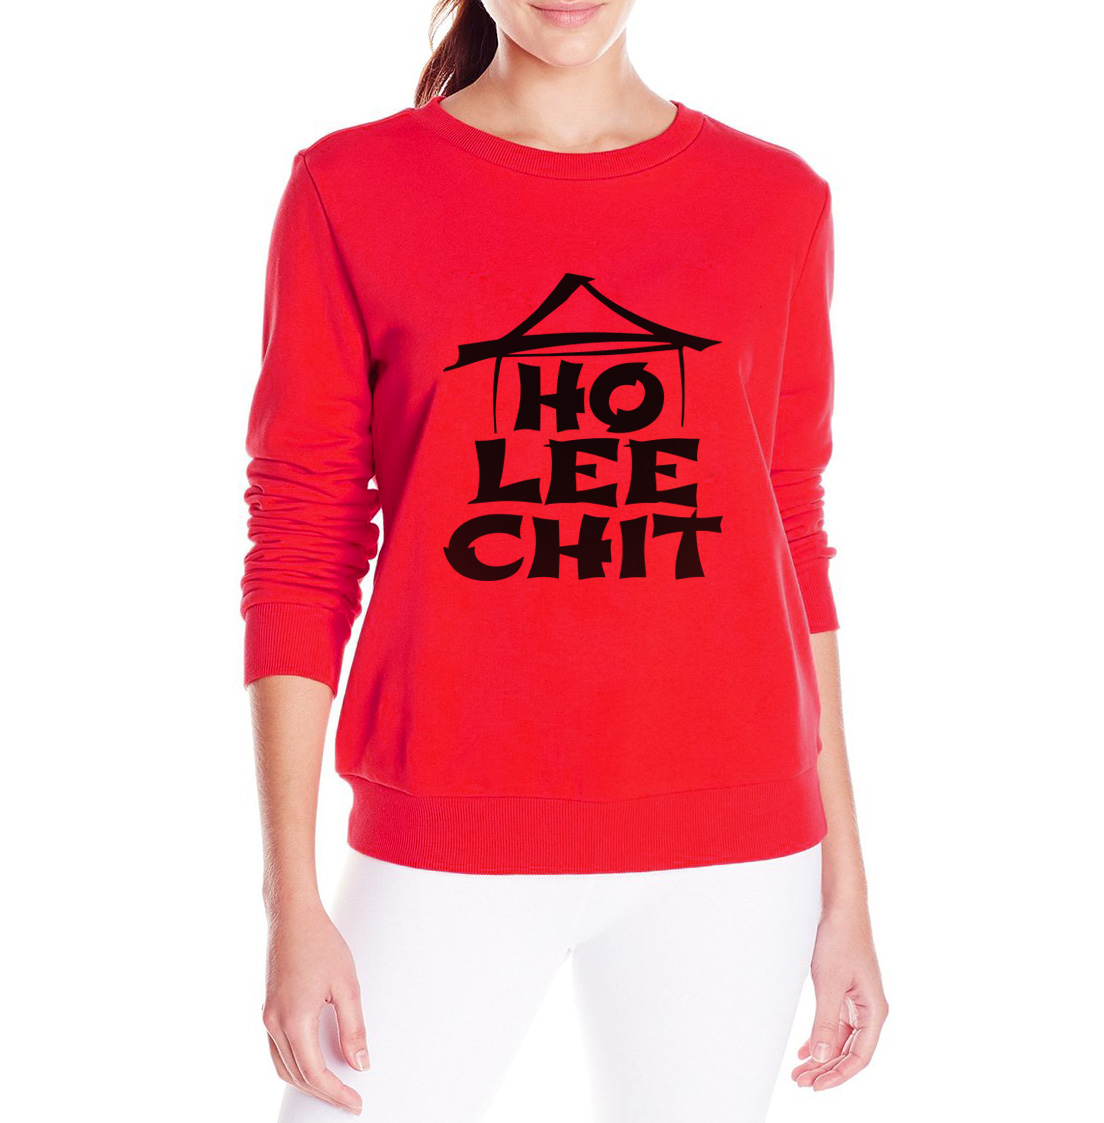 Hot sale Ho Lee Chit Holy sweatshit graphics funny kpop brand tracksuit women casual 2017 autumn Harajuku hoodies european style